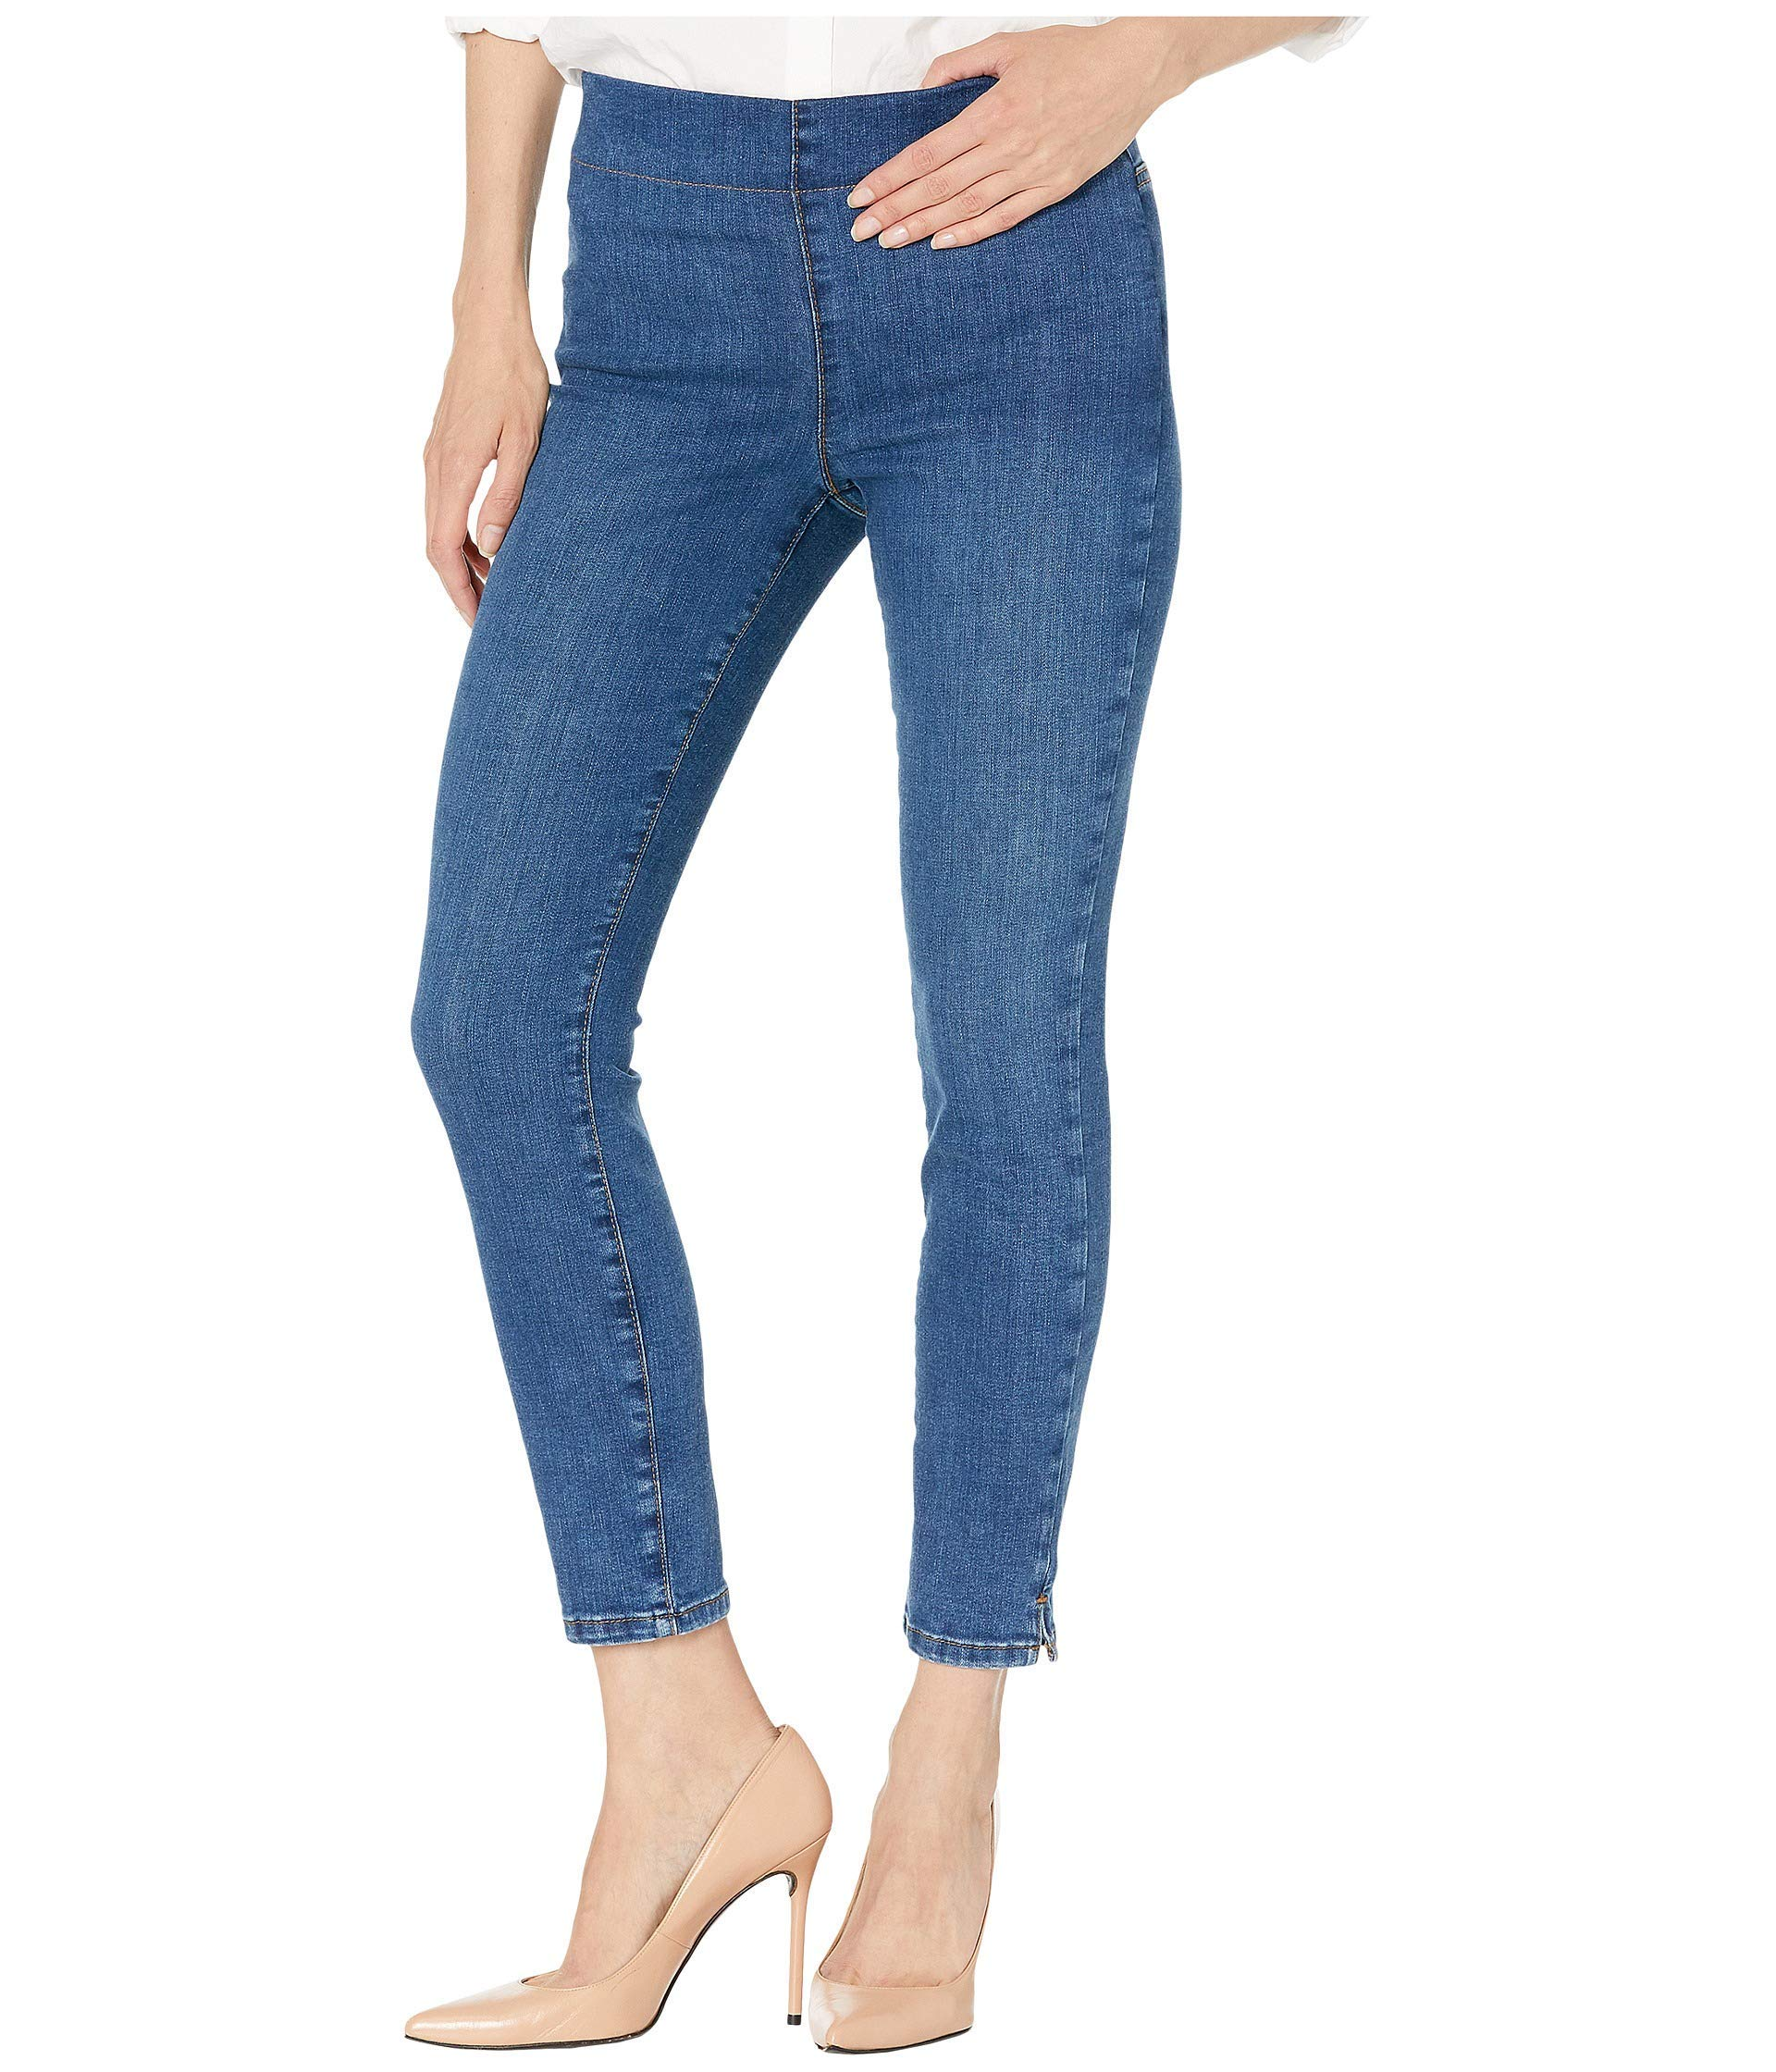 NYDJ Womens Uplift Alina Legging Jeans in Future Fit Denim